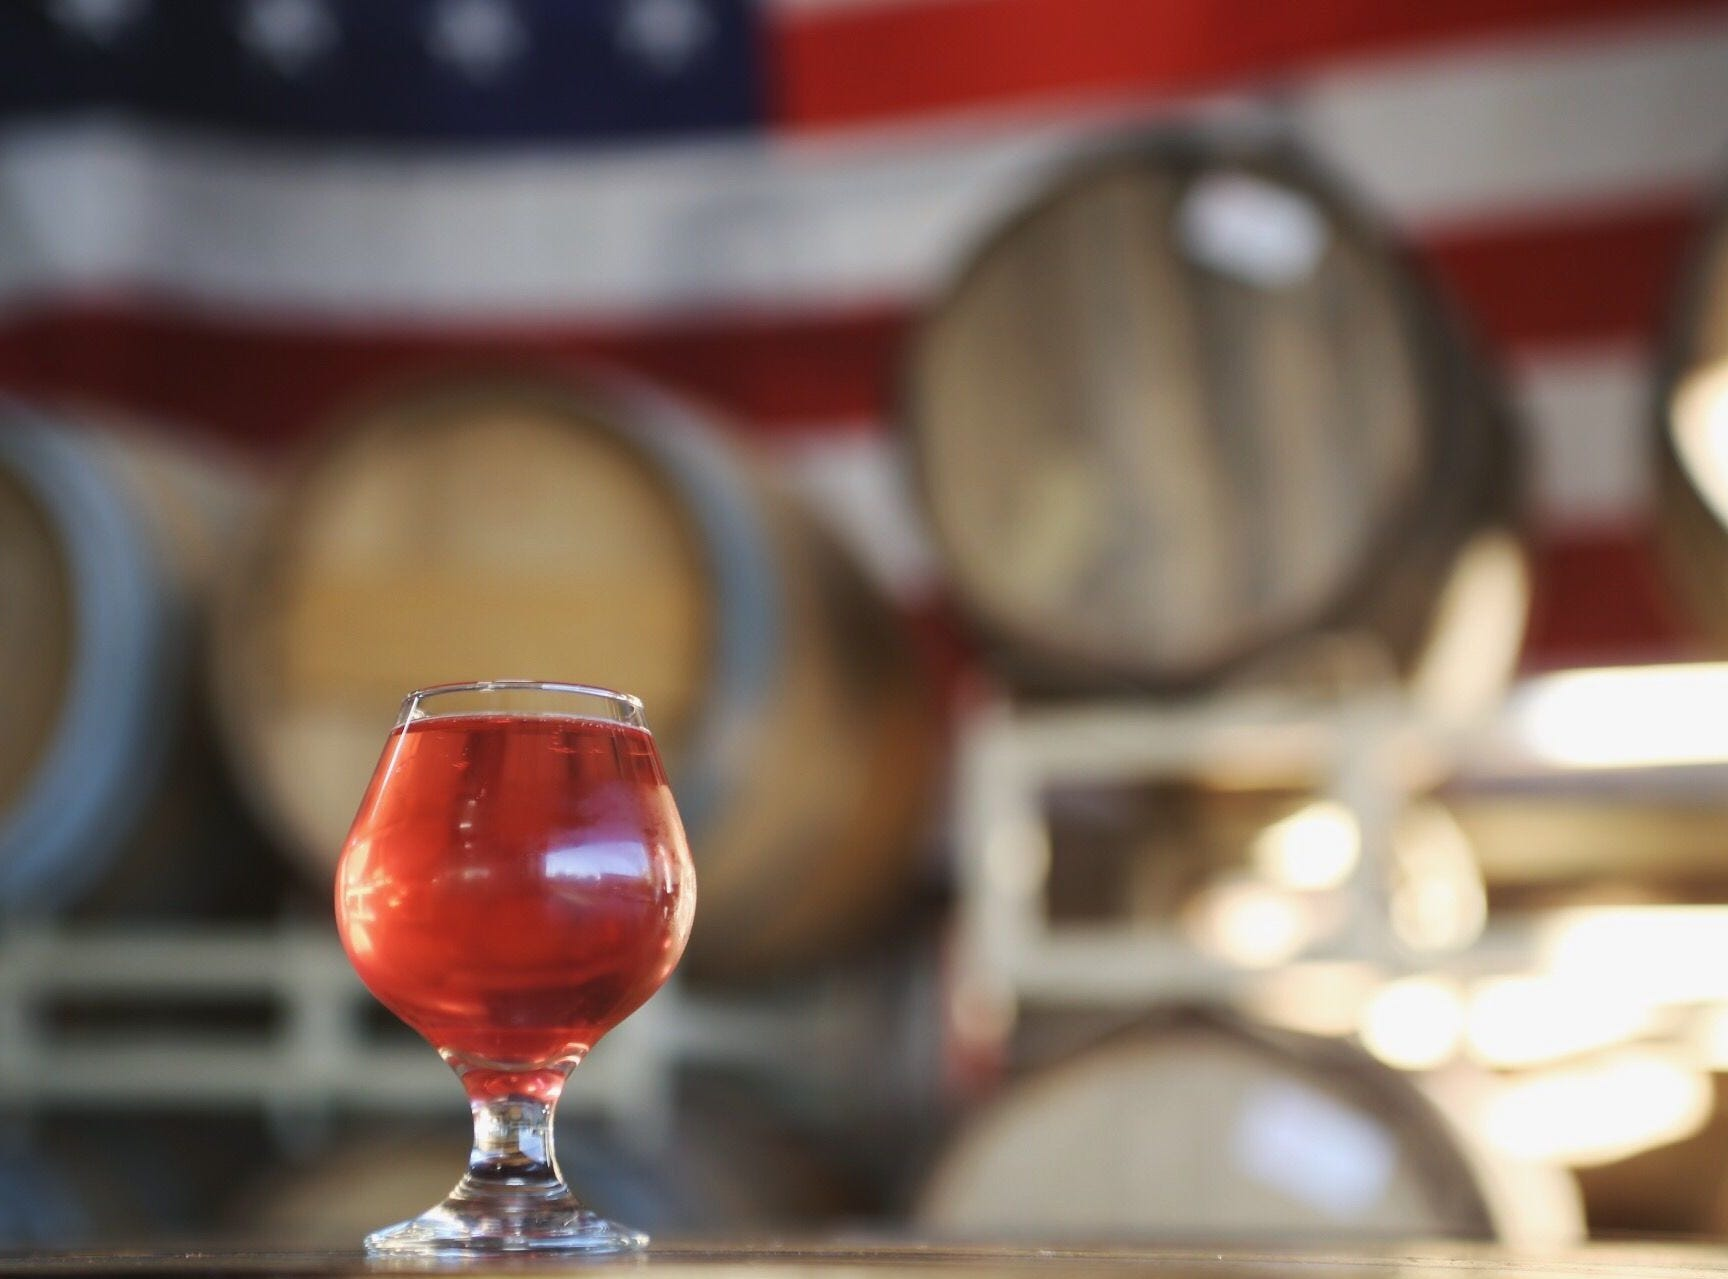 Cider Corps | Nov. 12, swing by for a free cup of coffee while watching theVeterans Day Parade. As always, the brewery offers veterans and active military $1 off a pint of cider. | Details:31 S. Robson St., Mesa. cidercorpsaz.com.